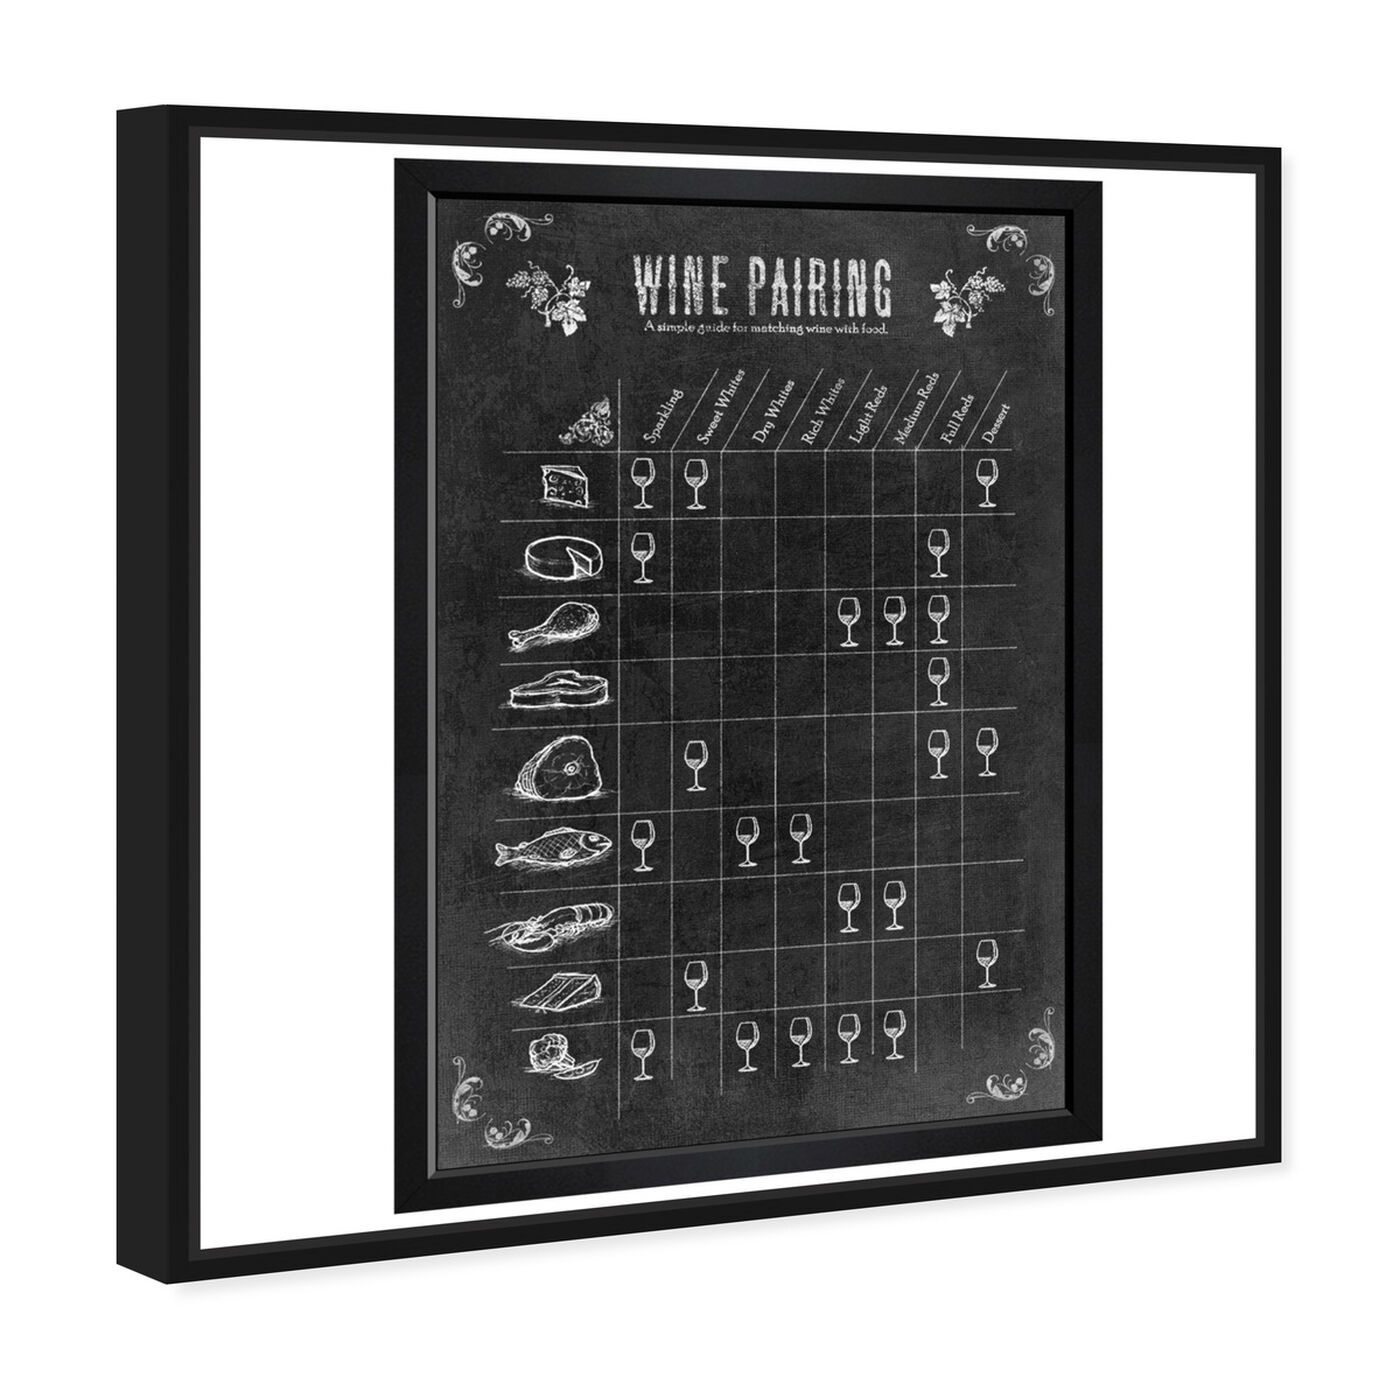 Angled view of Wine Pairing Guide featuring drinks and spirits and wine art.